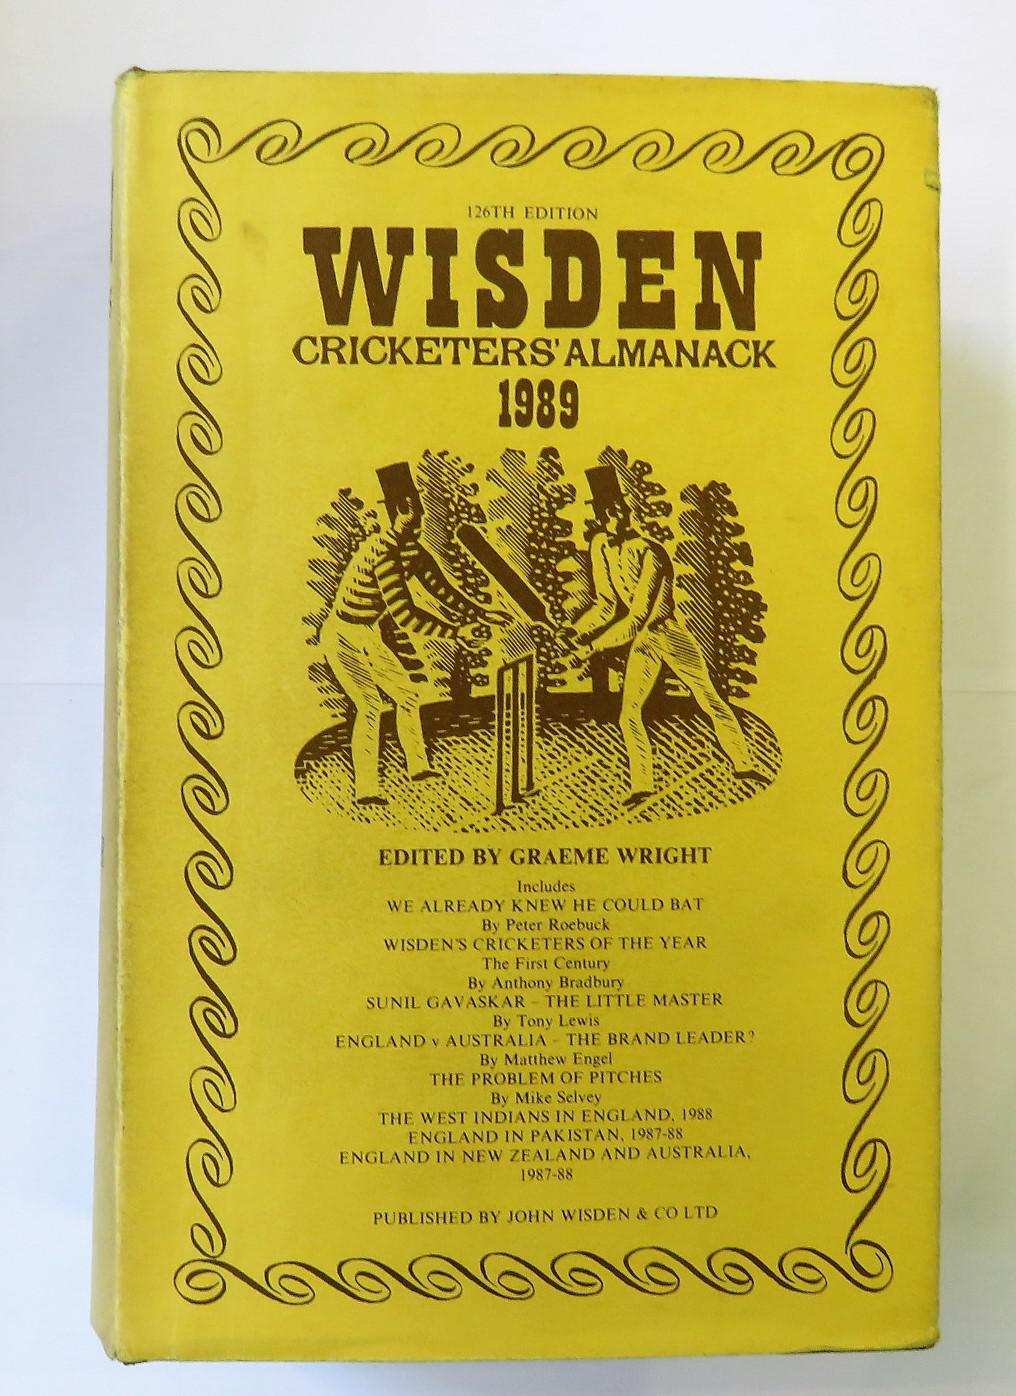 Wisden Cricketers' Almanack 1989